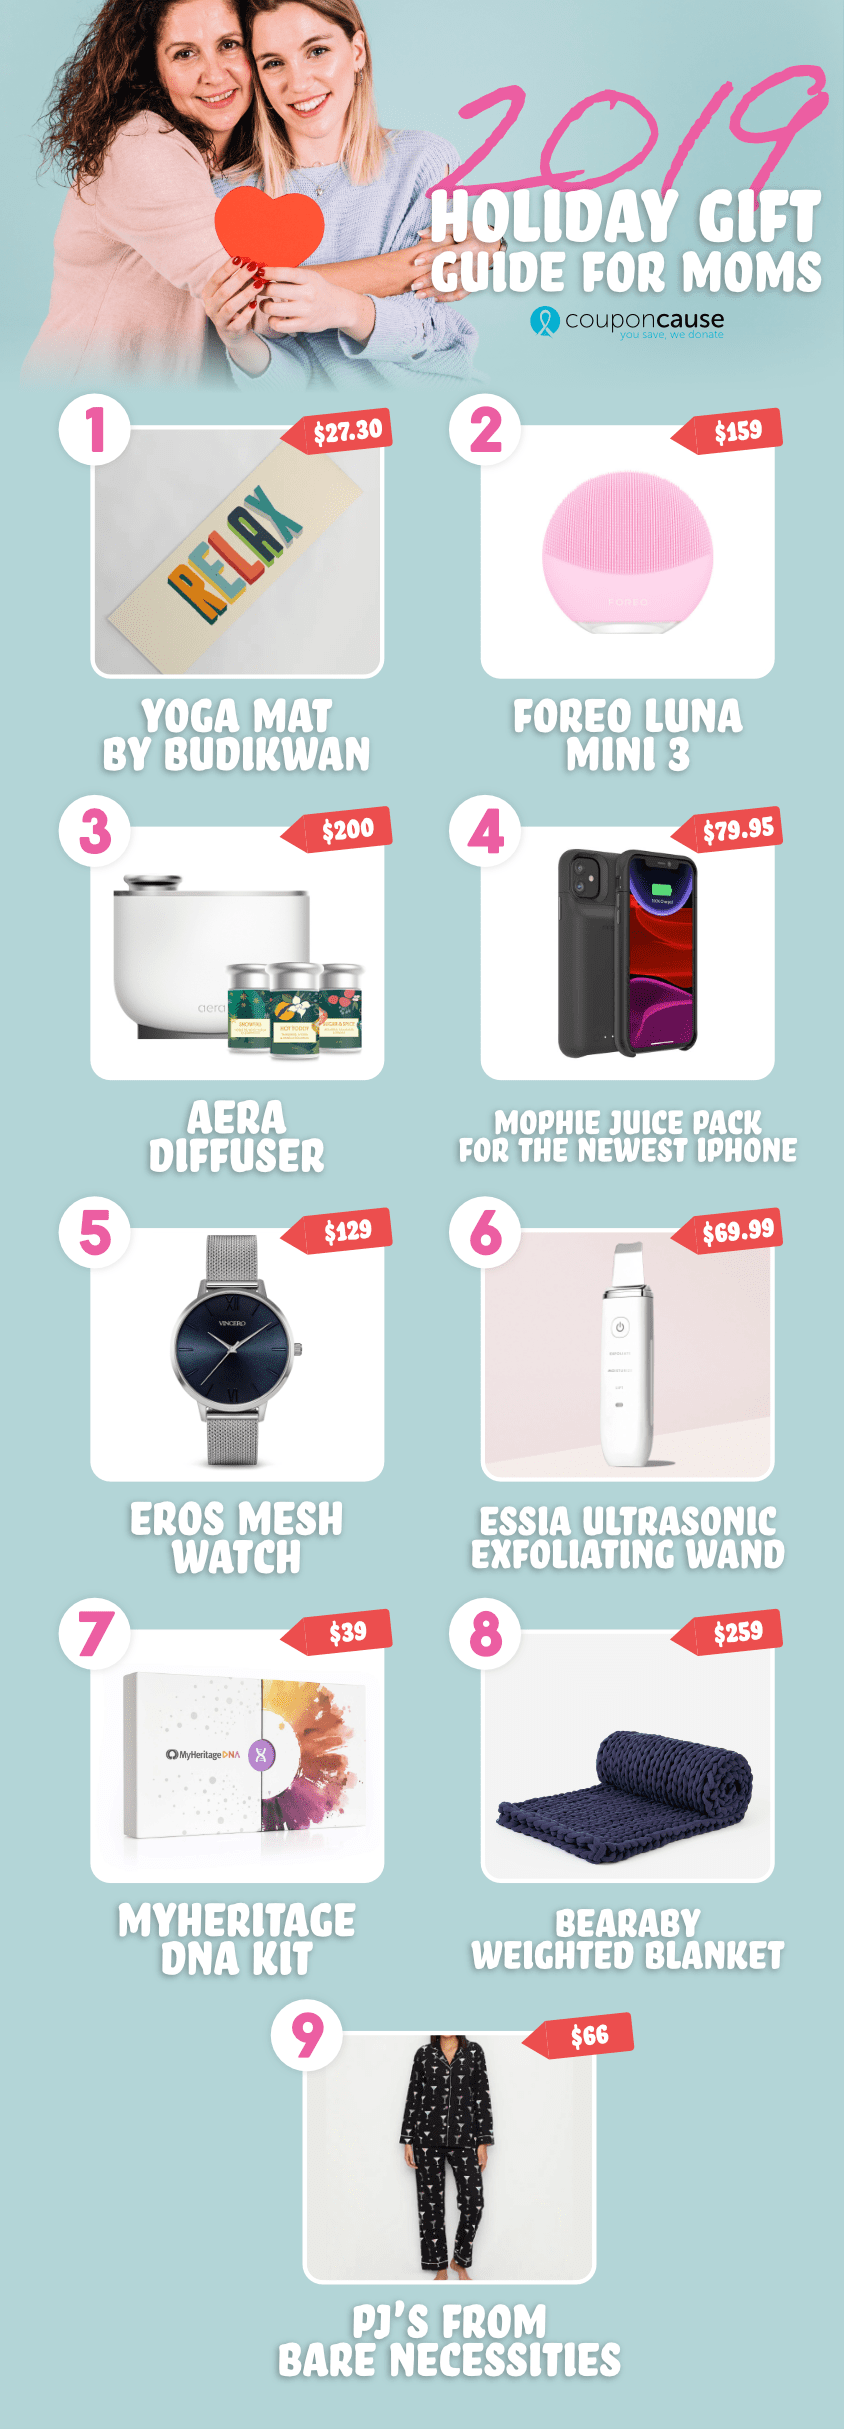 CouponCause Holiday Gift Guide for Moms 2019